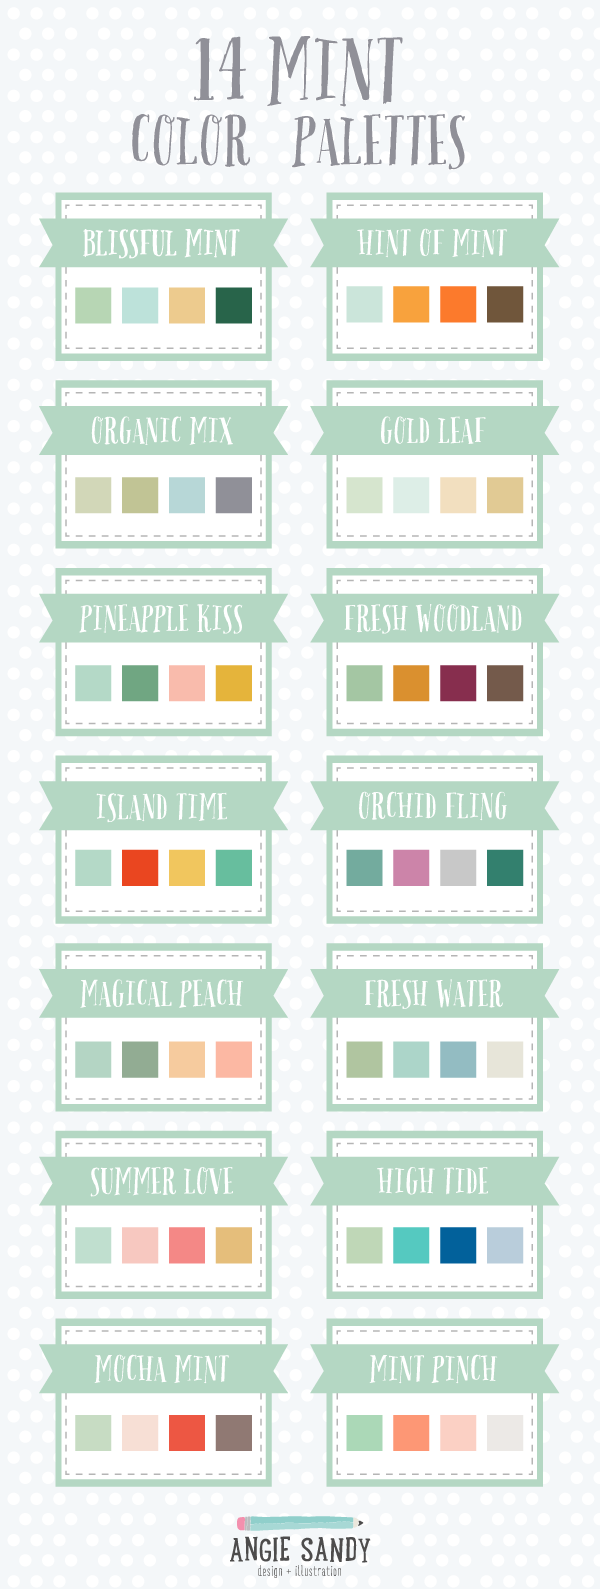 Paint colors website - 14 Mint Color Palettes